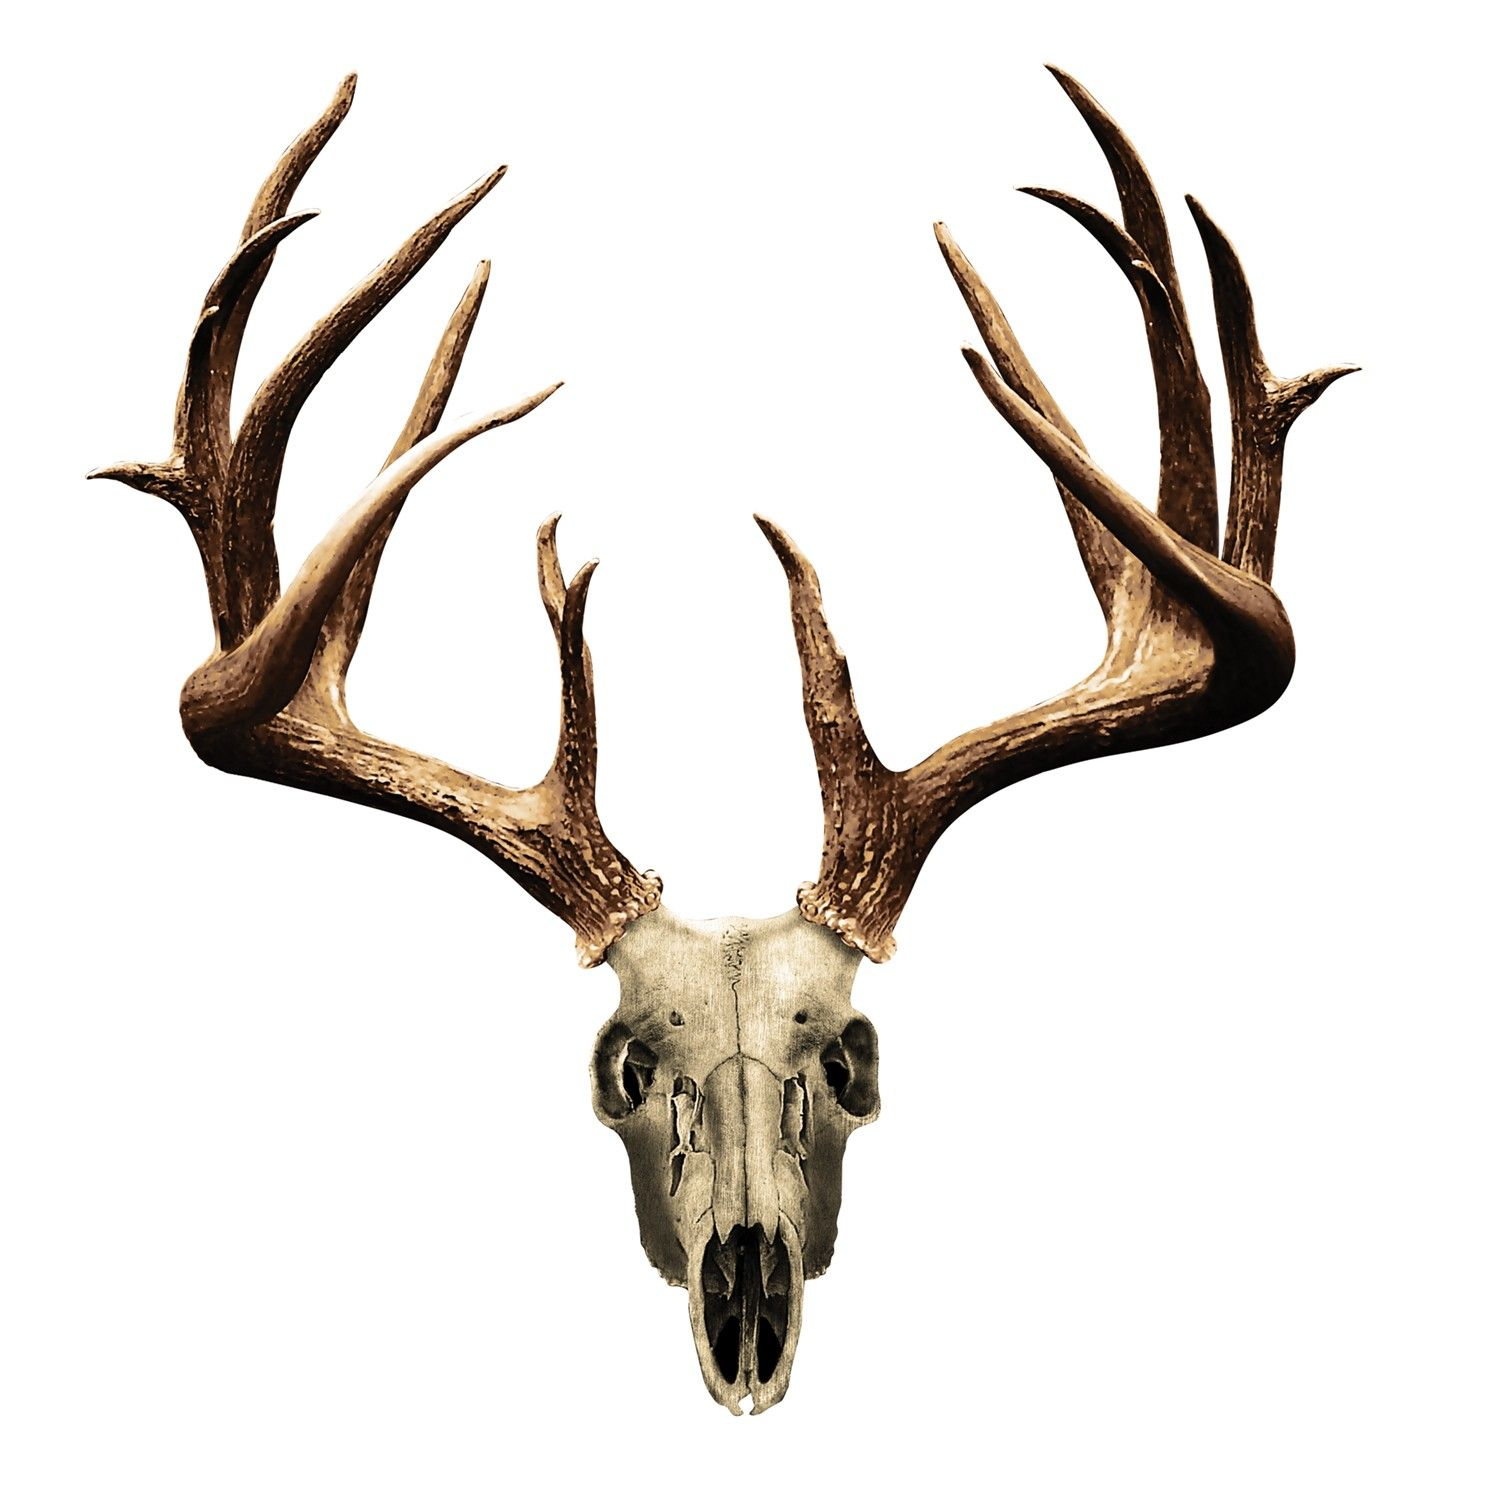 whitetail deer antlers - Google Search | Neon nature | Pinterest ...